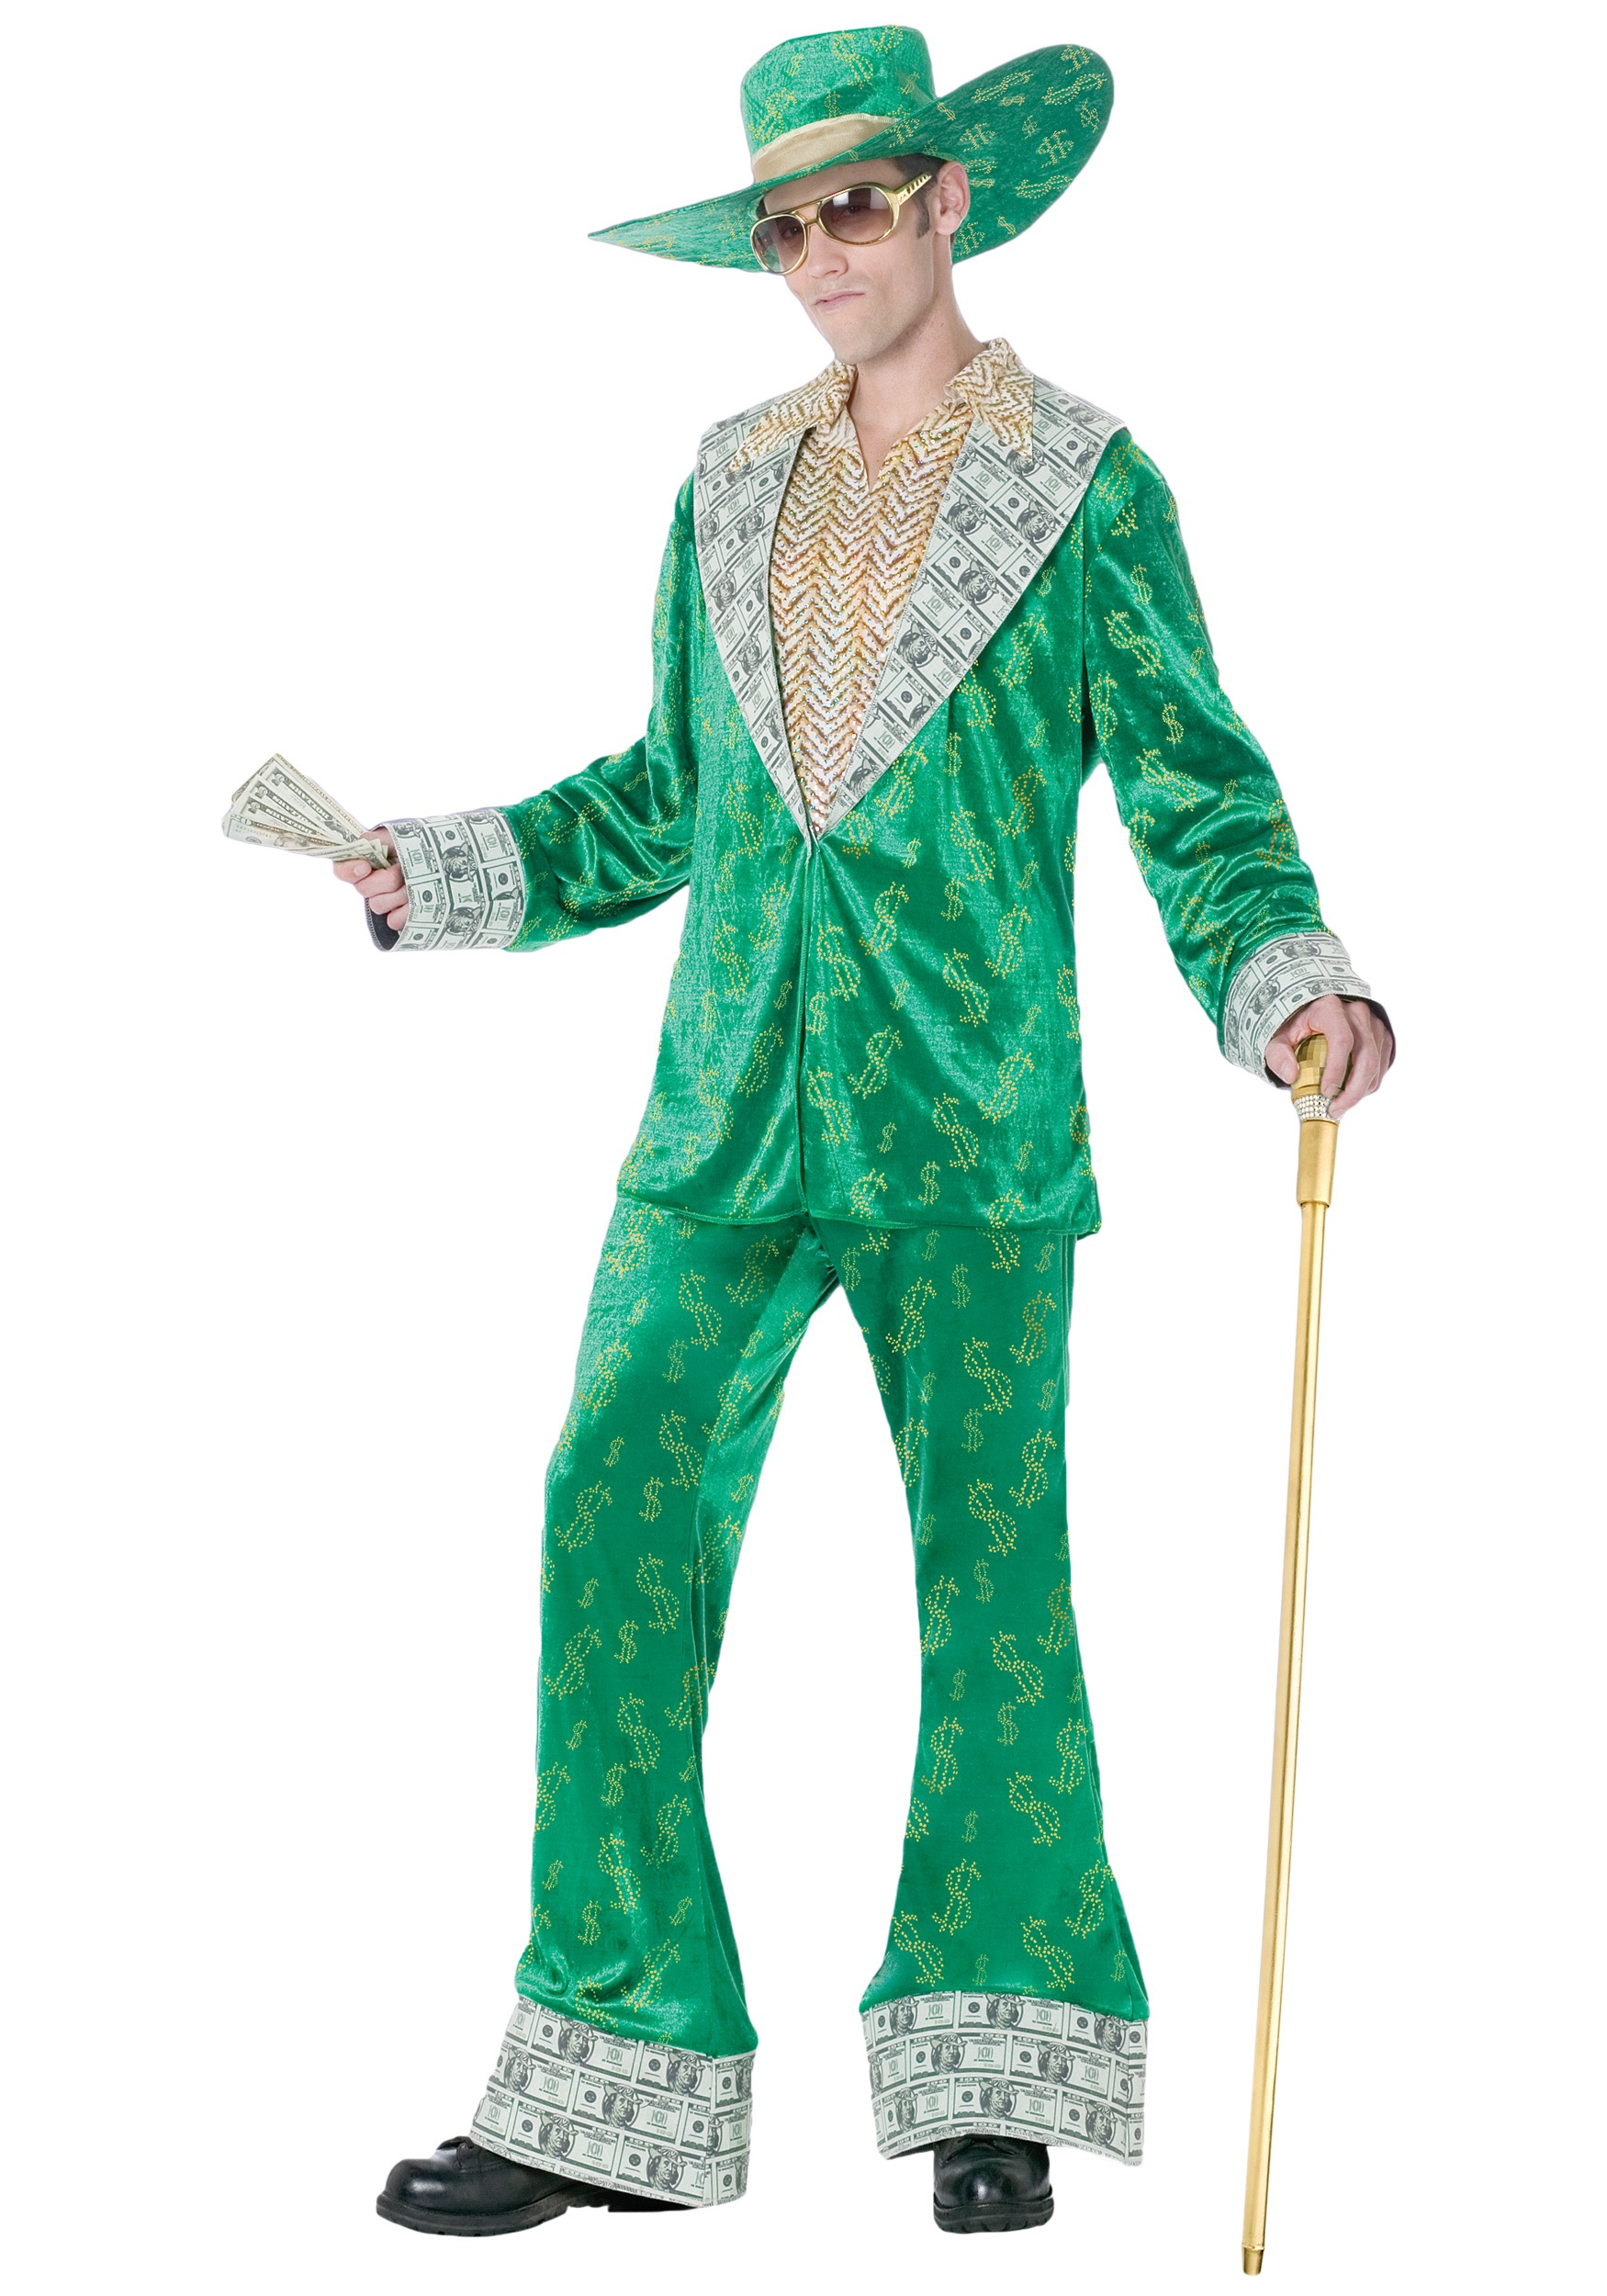 Big Money Pimp Costumes  sc 1 st  Halloween Costumes & Big Money Pimp Costumes - Halloween Costume Ideas 2016